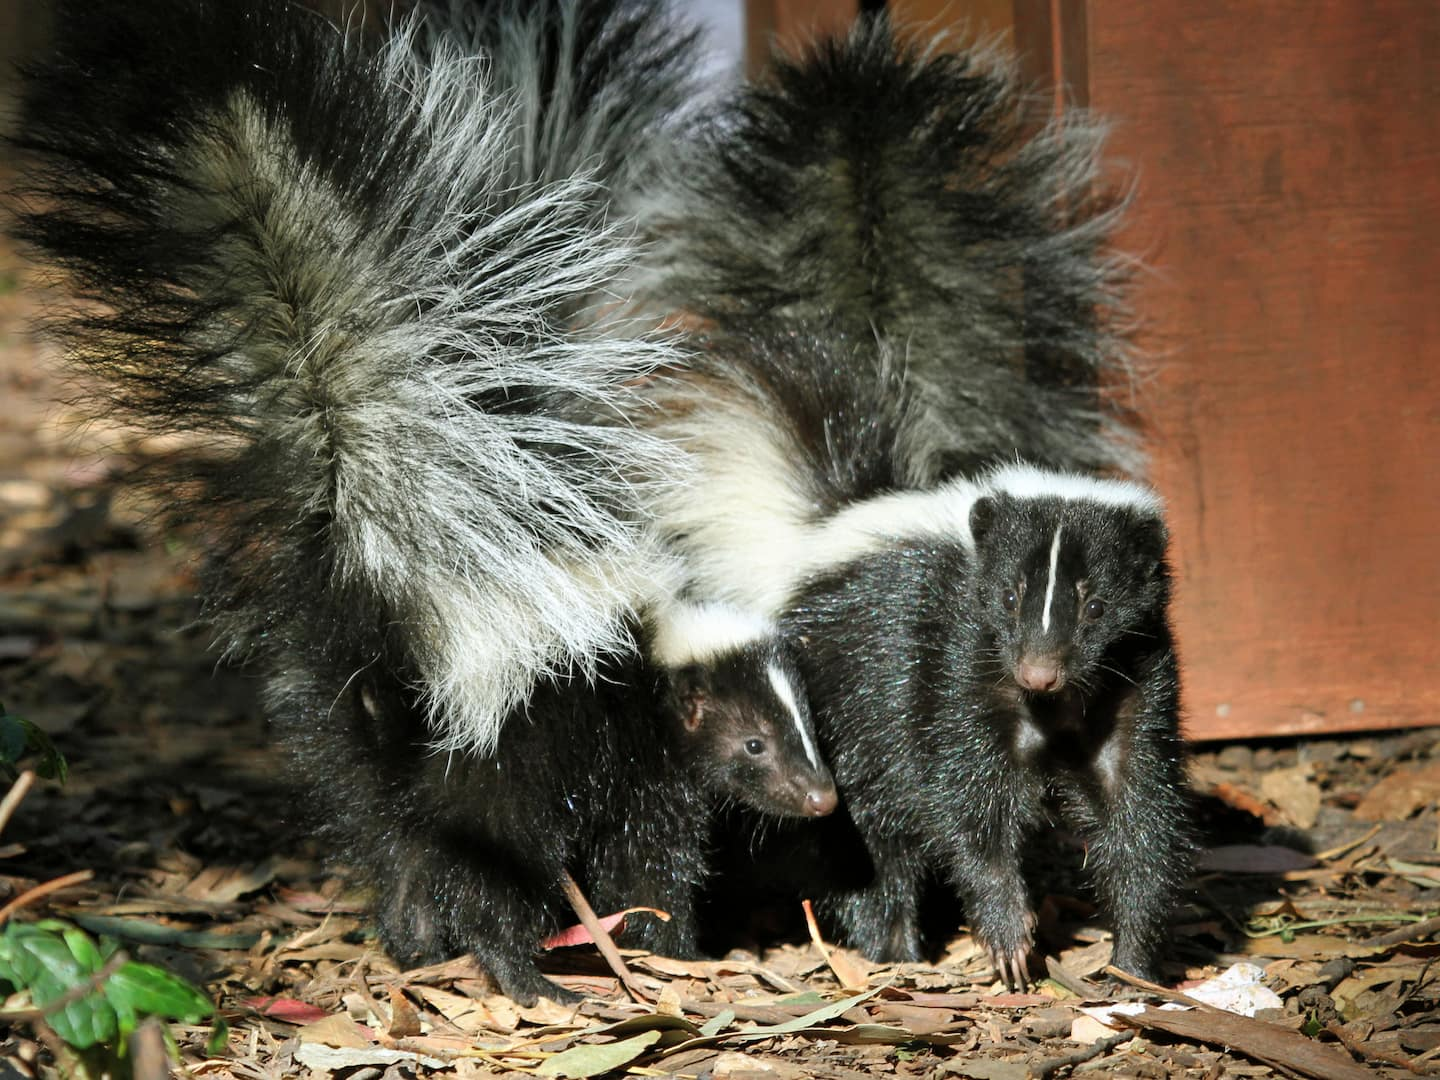 How to Get Rid of Skunk Smell in Your Home | Angie's List